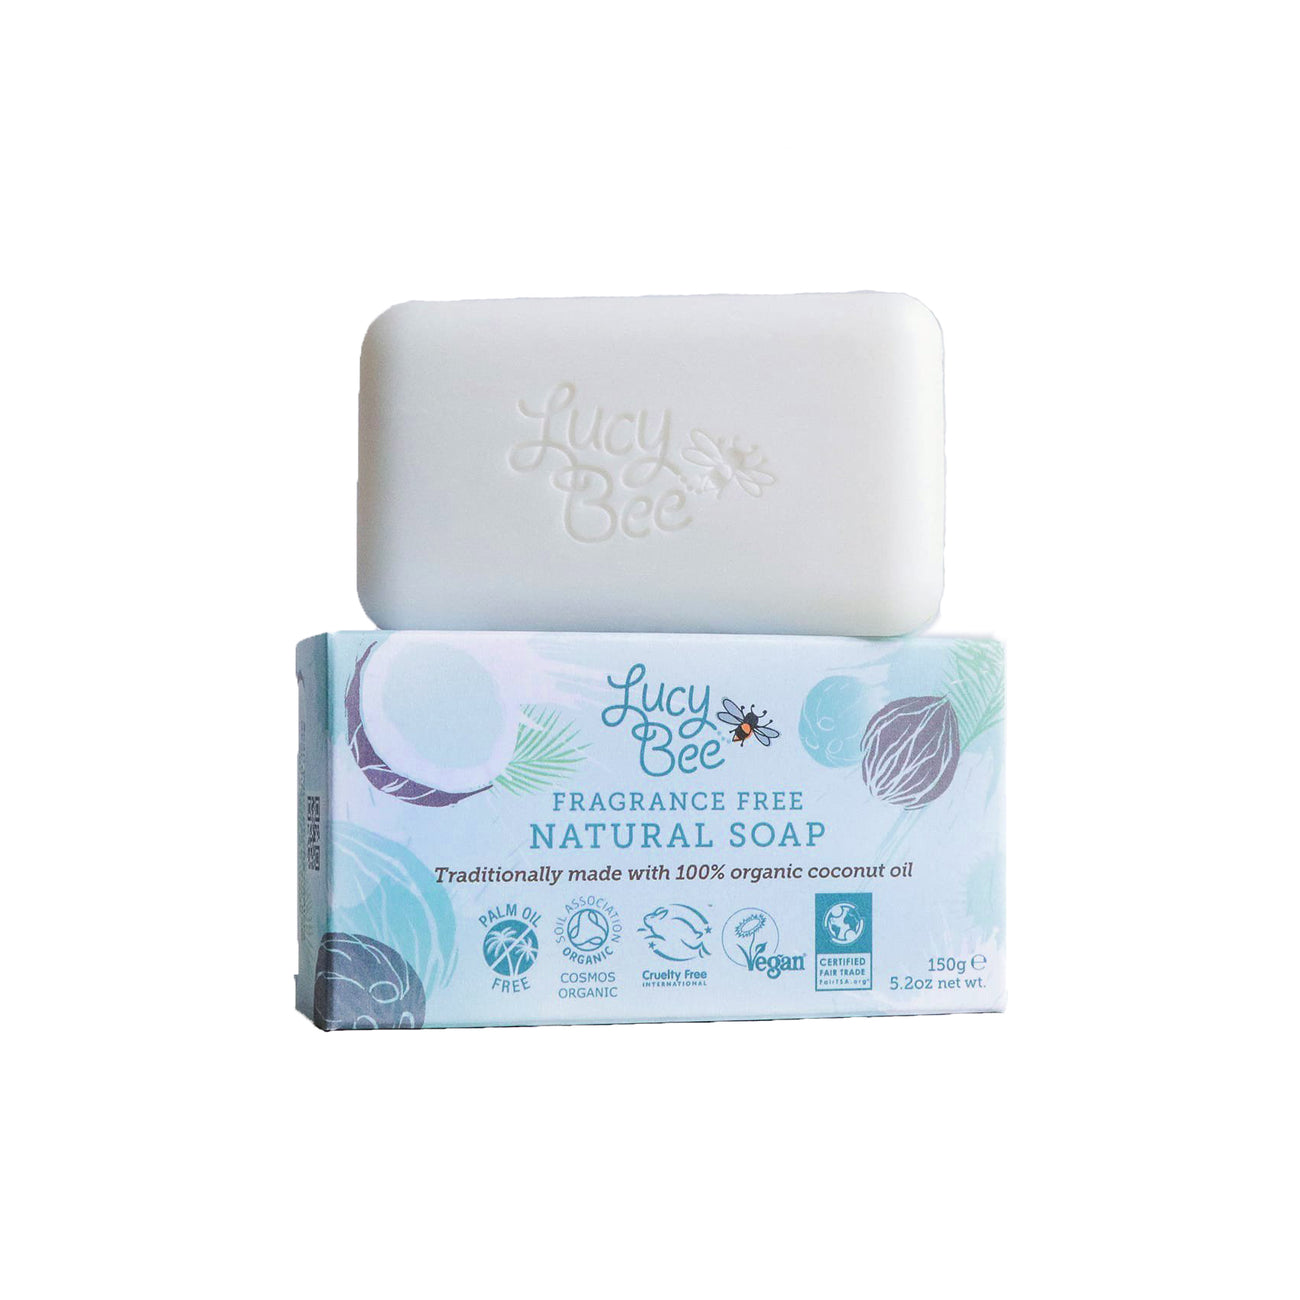 Lucy Bee Fragrance Free Soap Bar and Pack Image